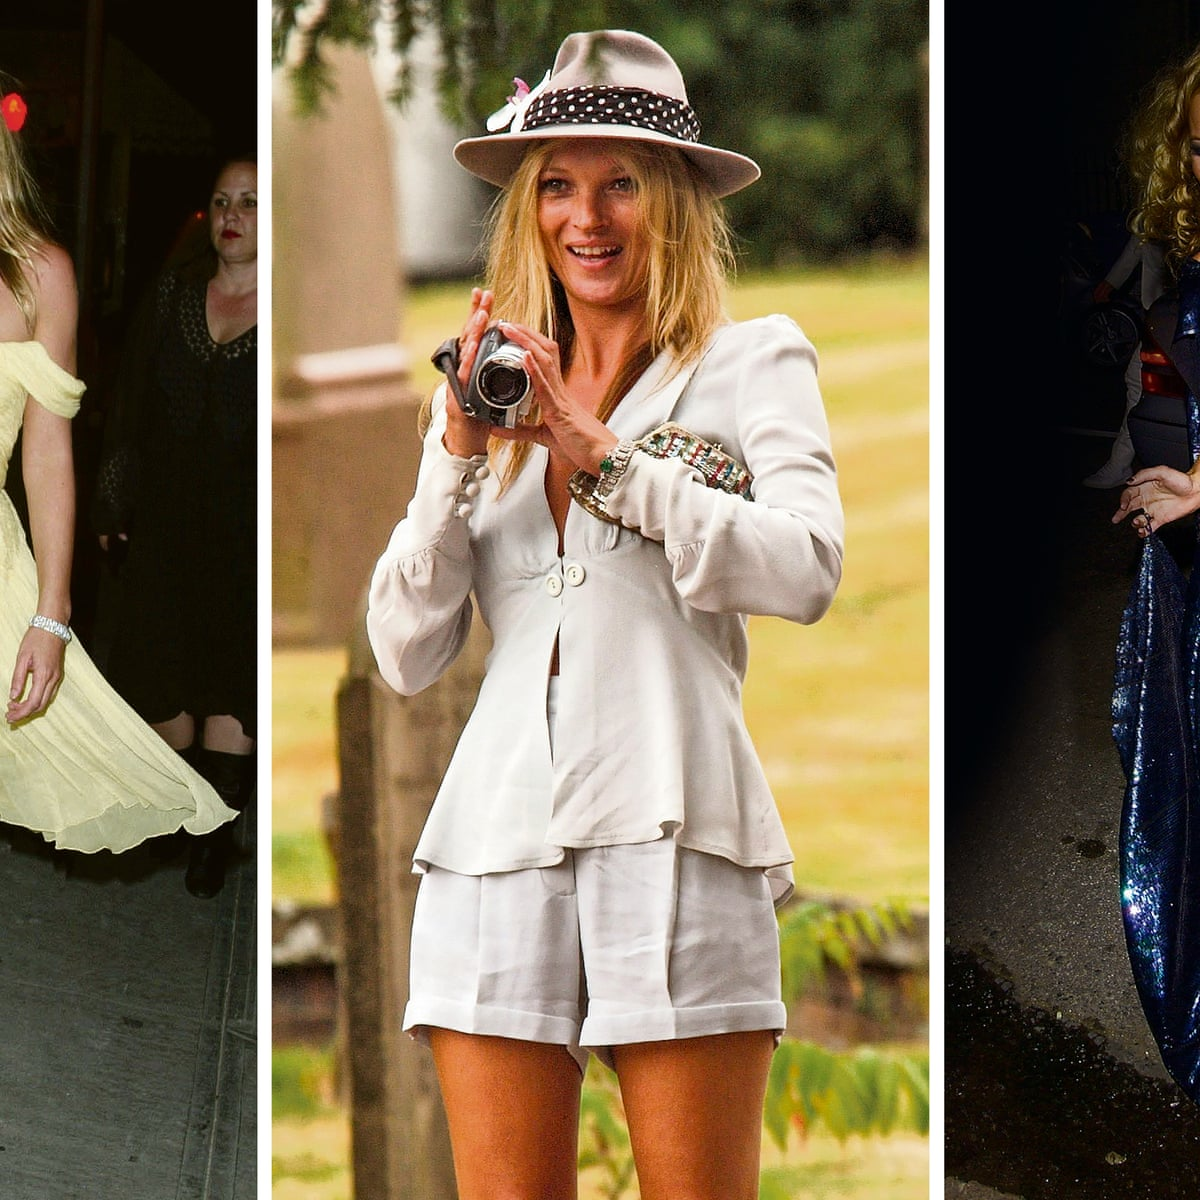 I Go With My Instincts Queen Of Vintage Kate Moss On How To Shop Secondhand Fashion The Guardian